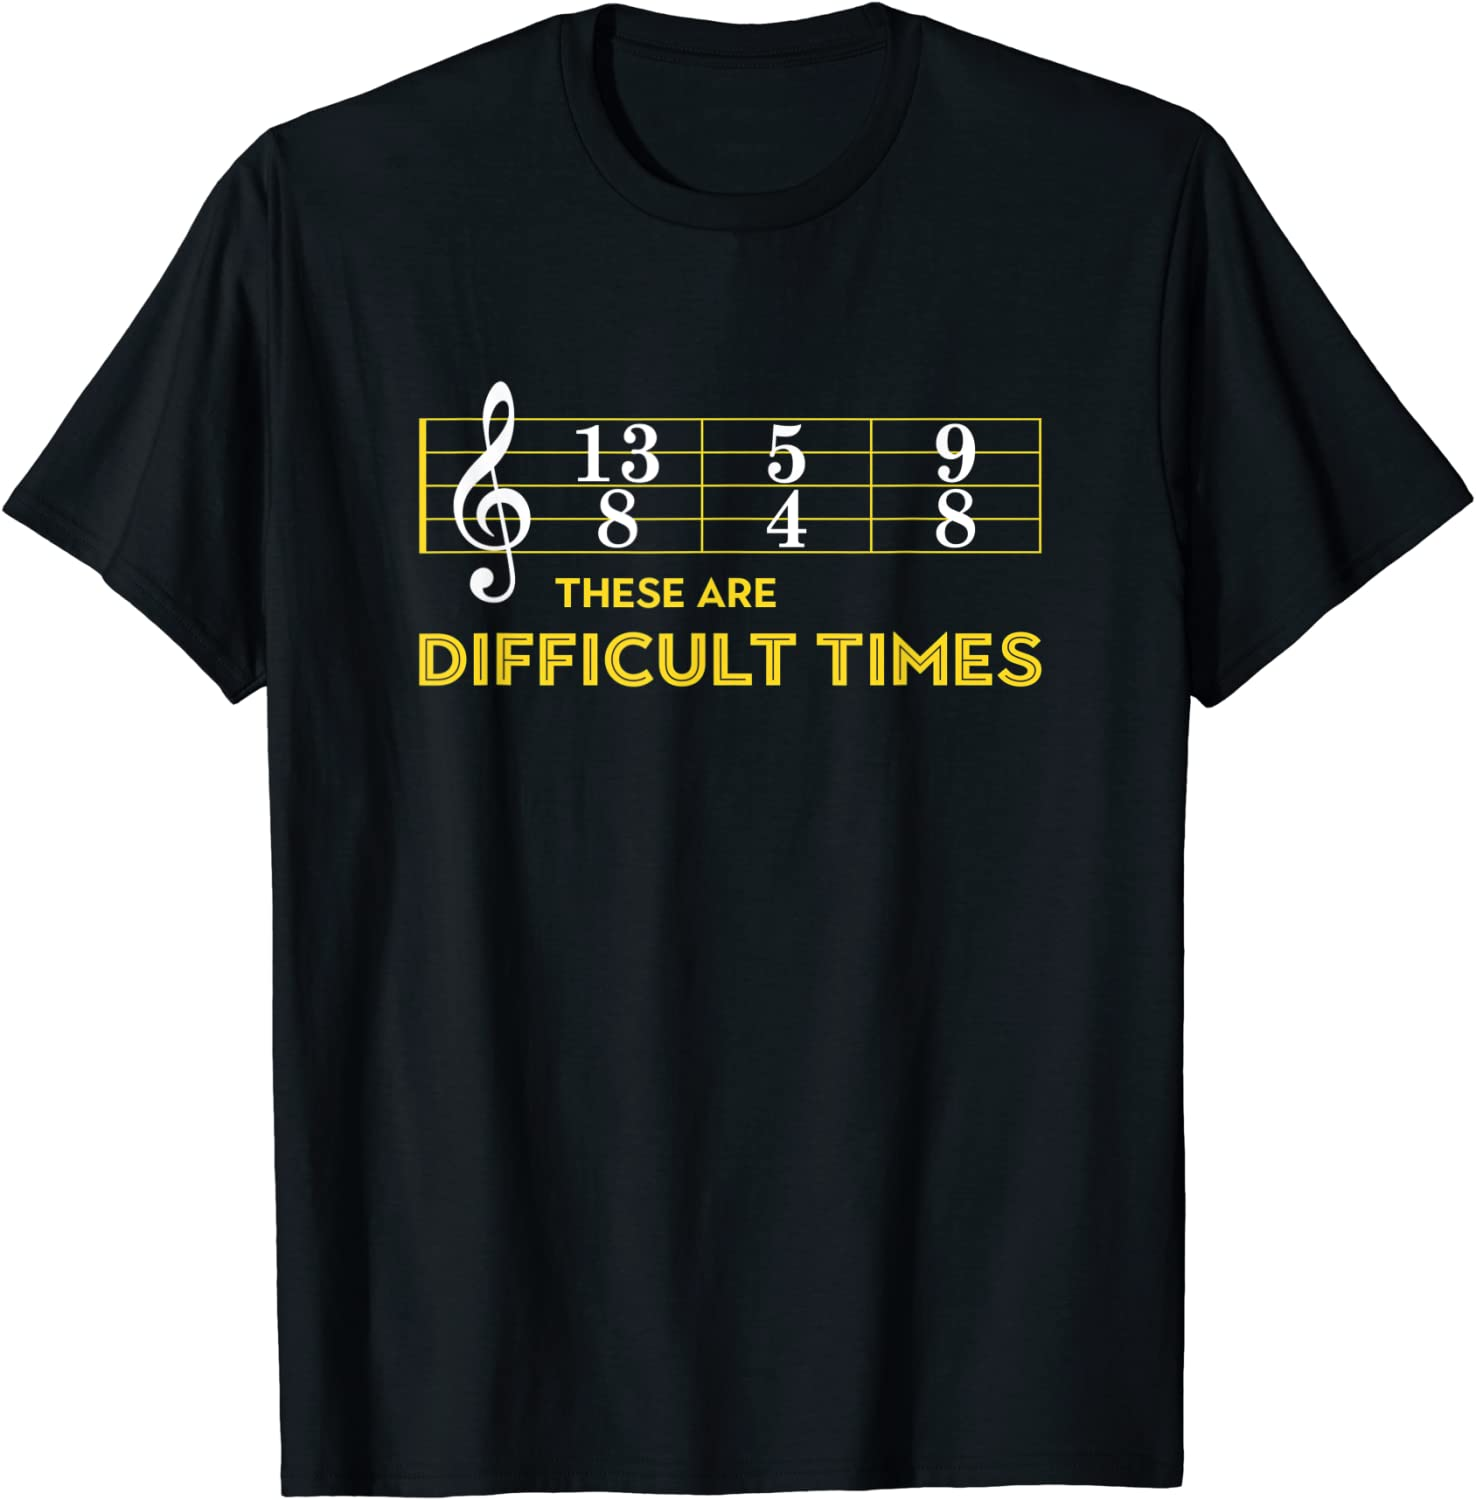 Musician OFFicial Sheet Bombing free shipping Music - These Difficult Times Are T-Shirt